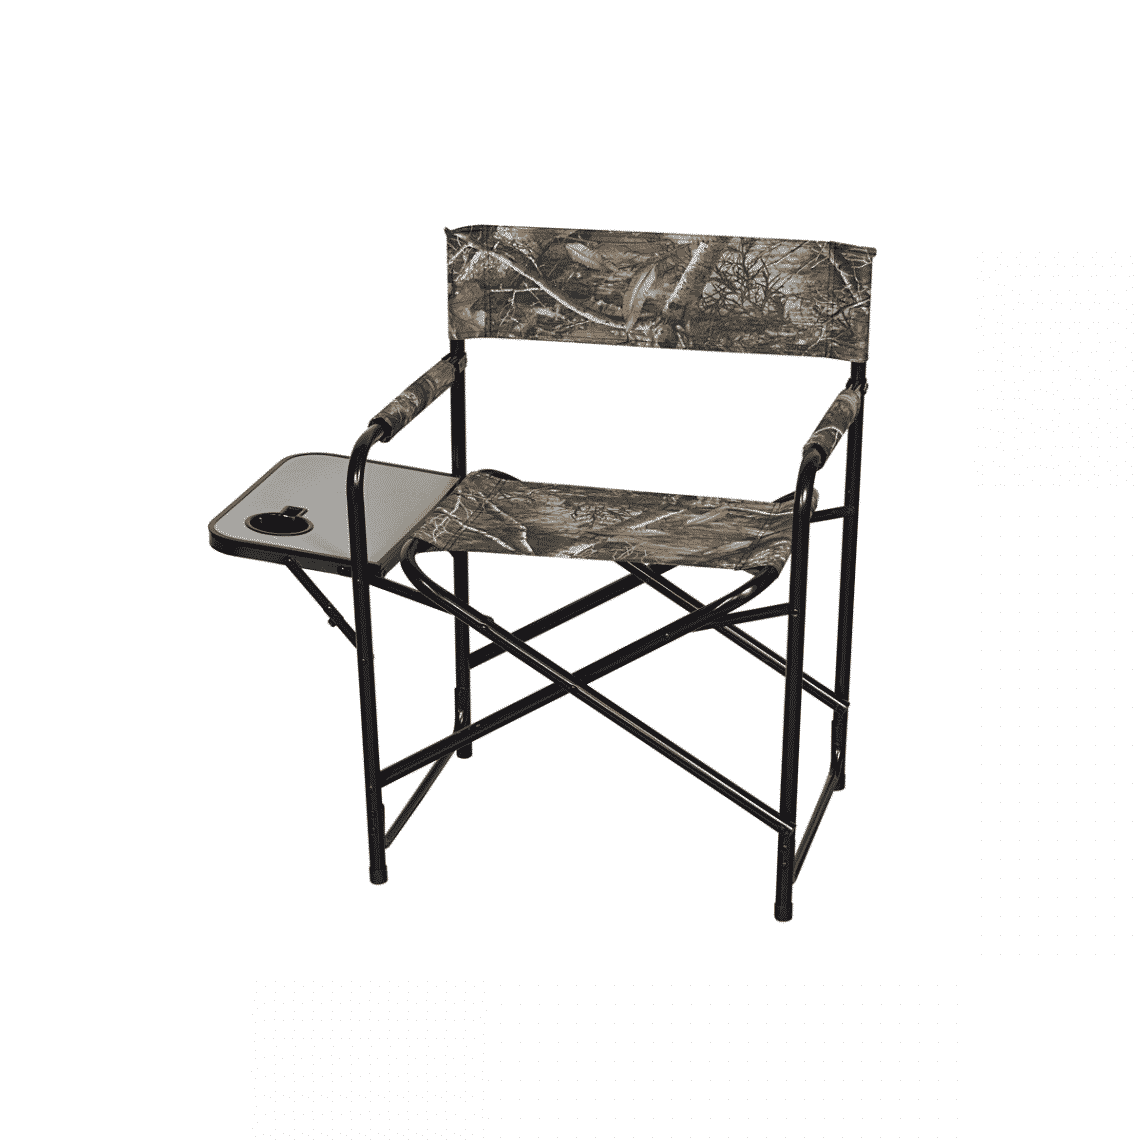 Peachy Mahco Outdoors Directors Chair Camo Unemploymentrelief Wooden Chair Designs For Living Room Unemploymentrelieforg